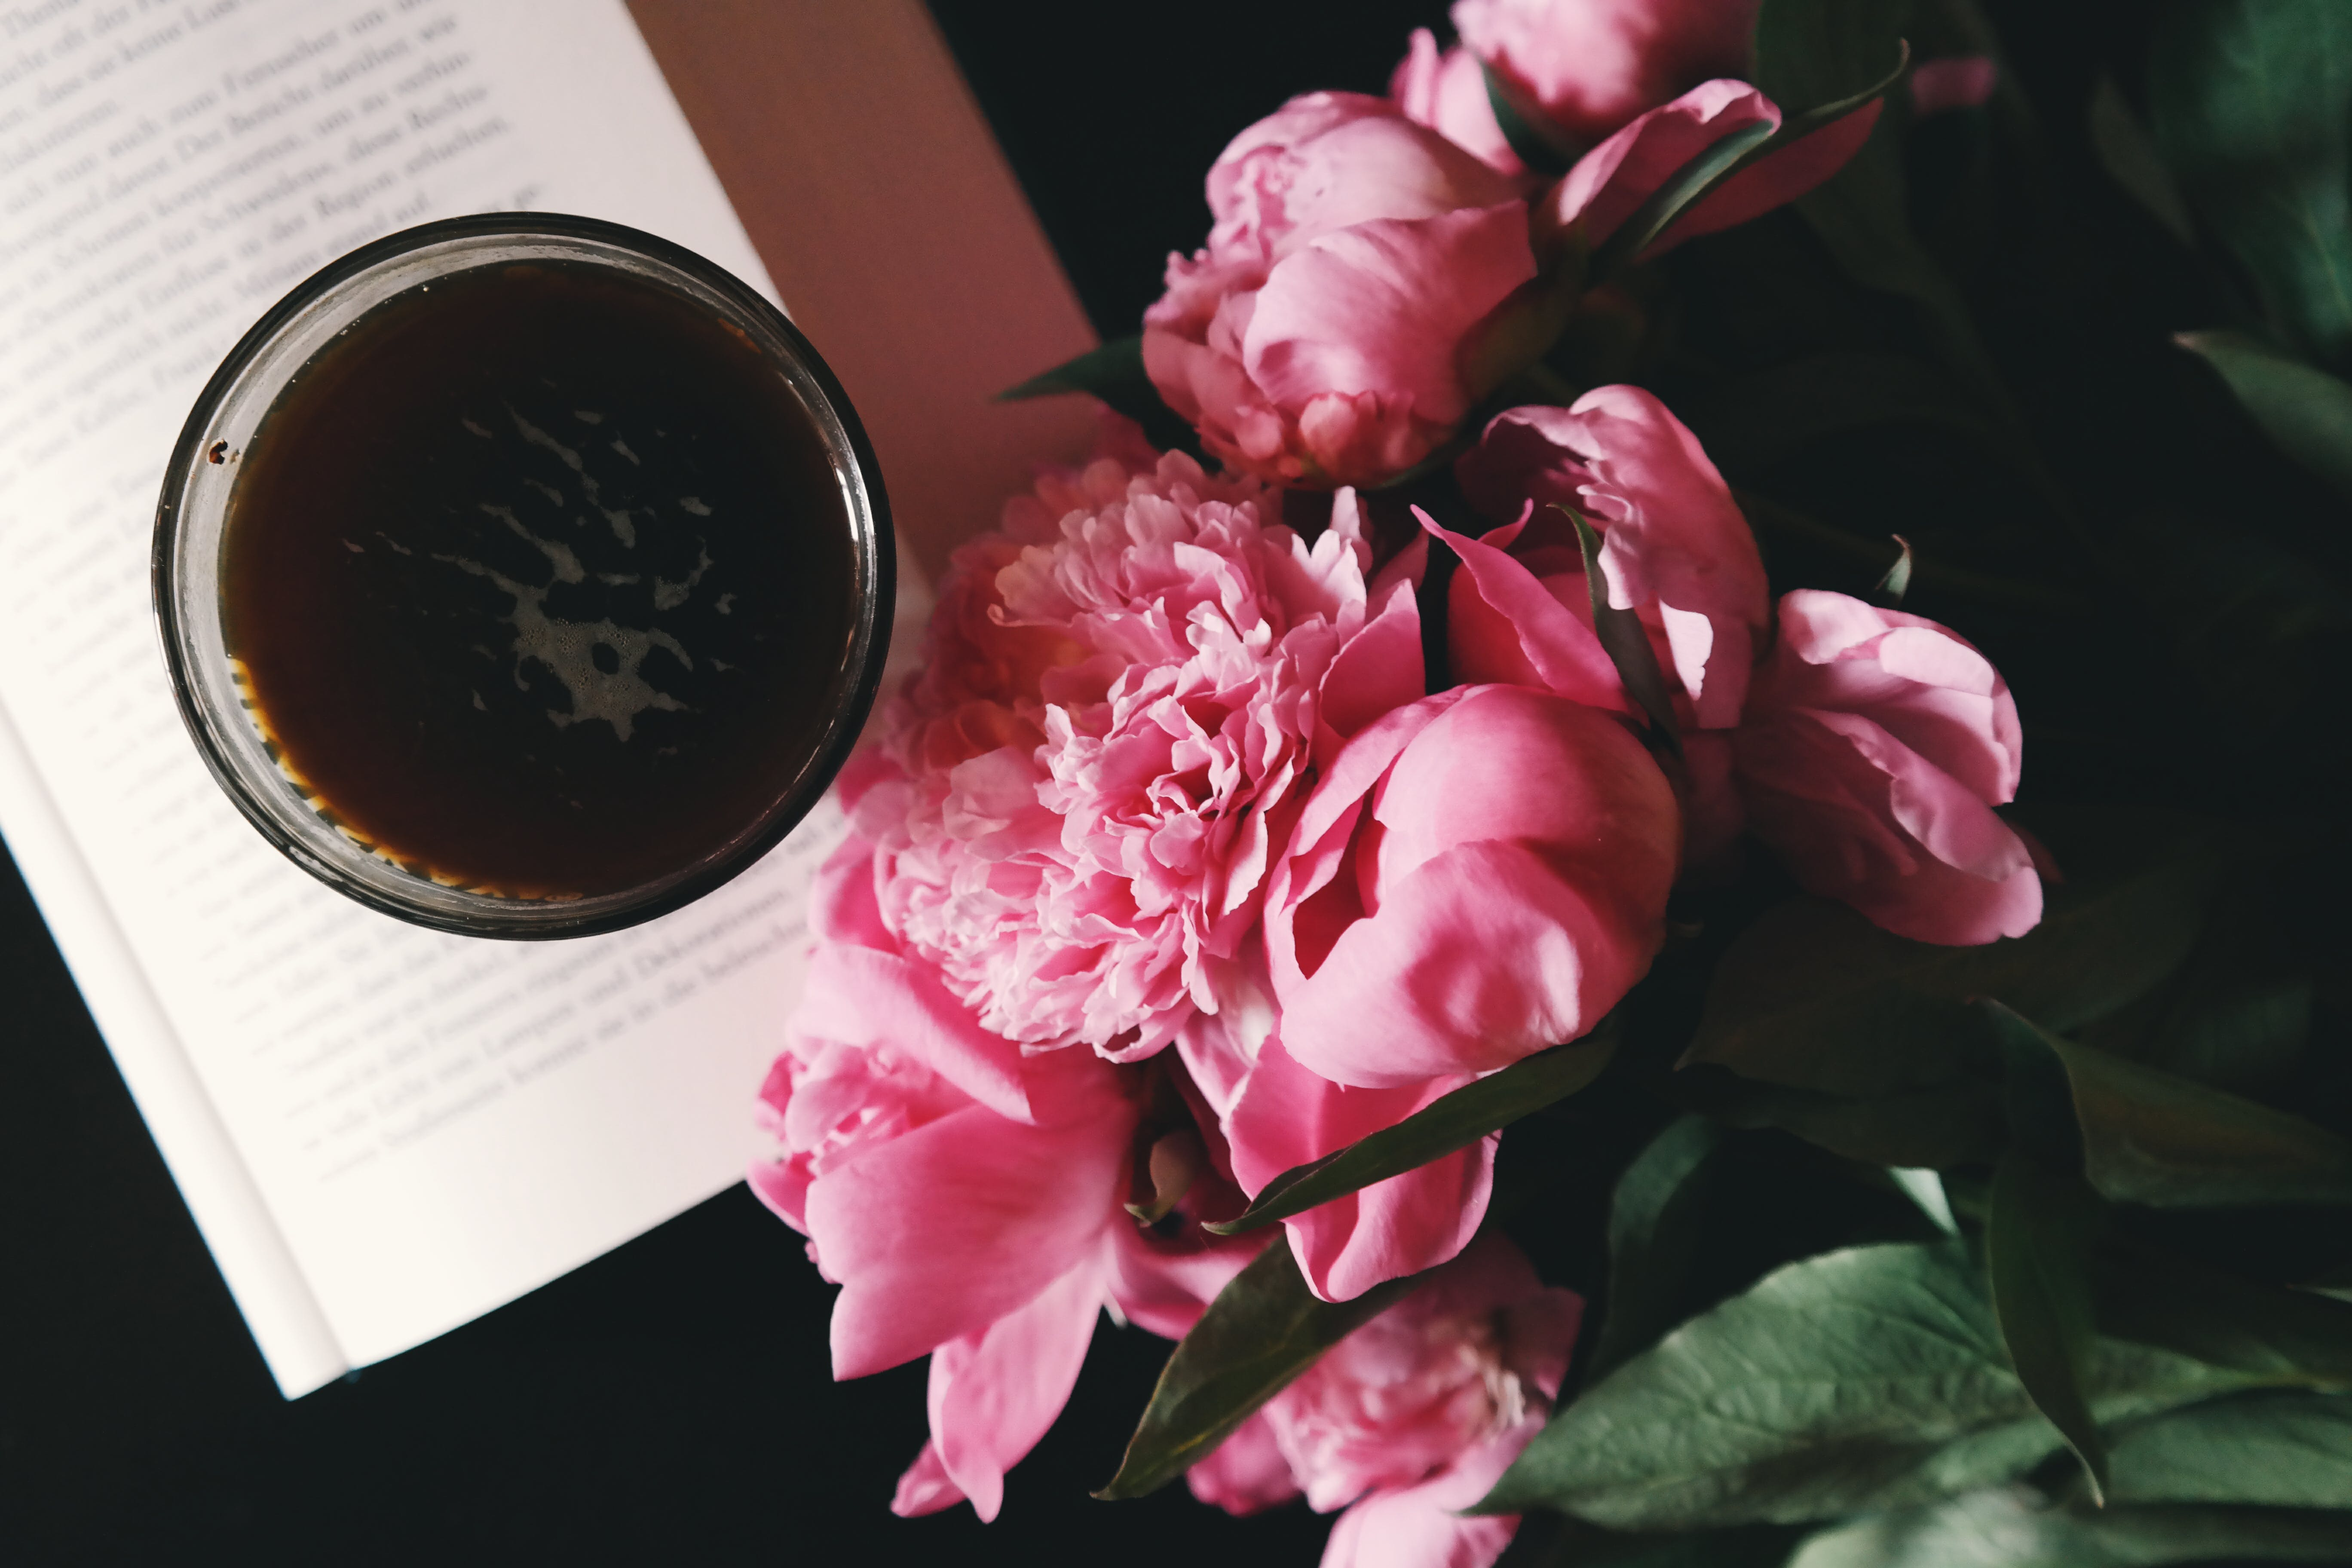 Pink Flowers Beside Cup on Book